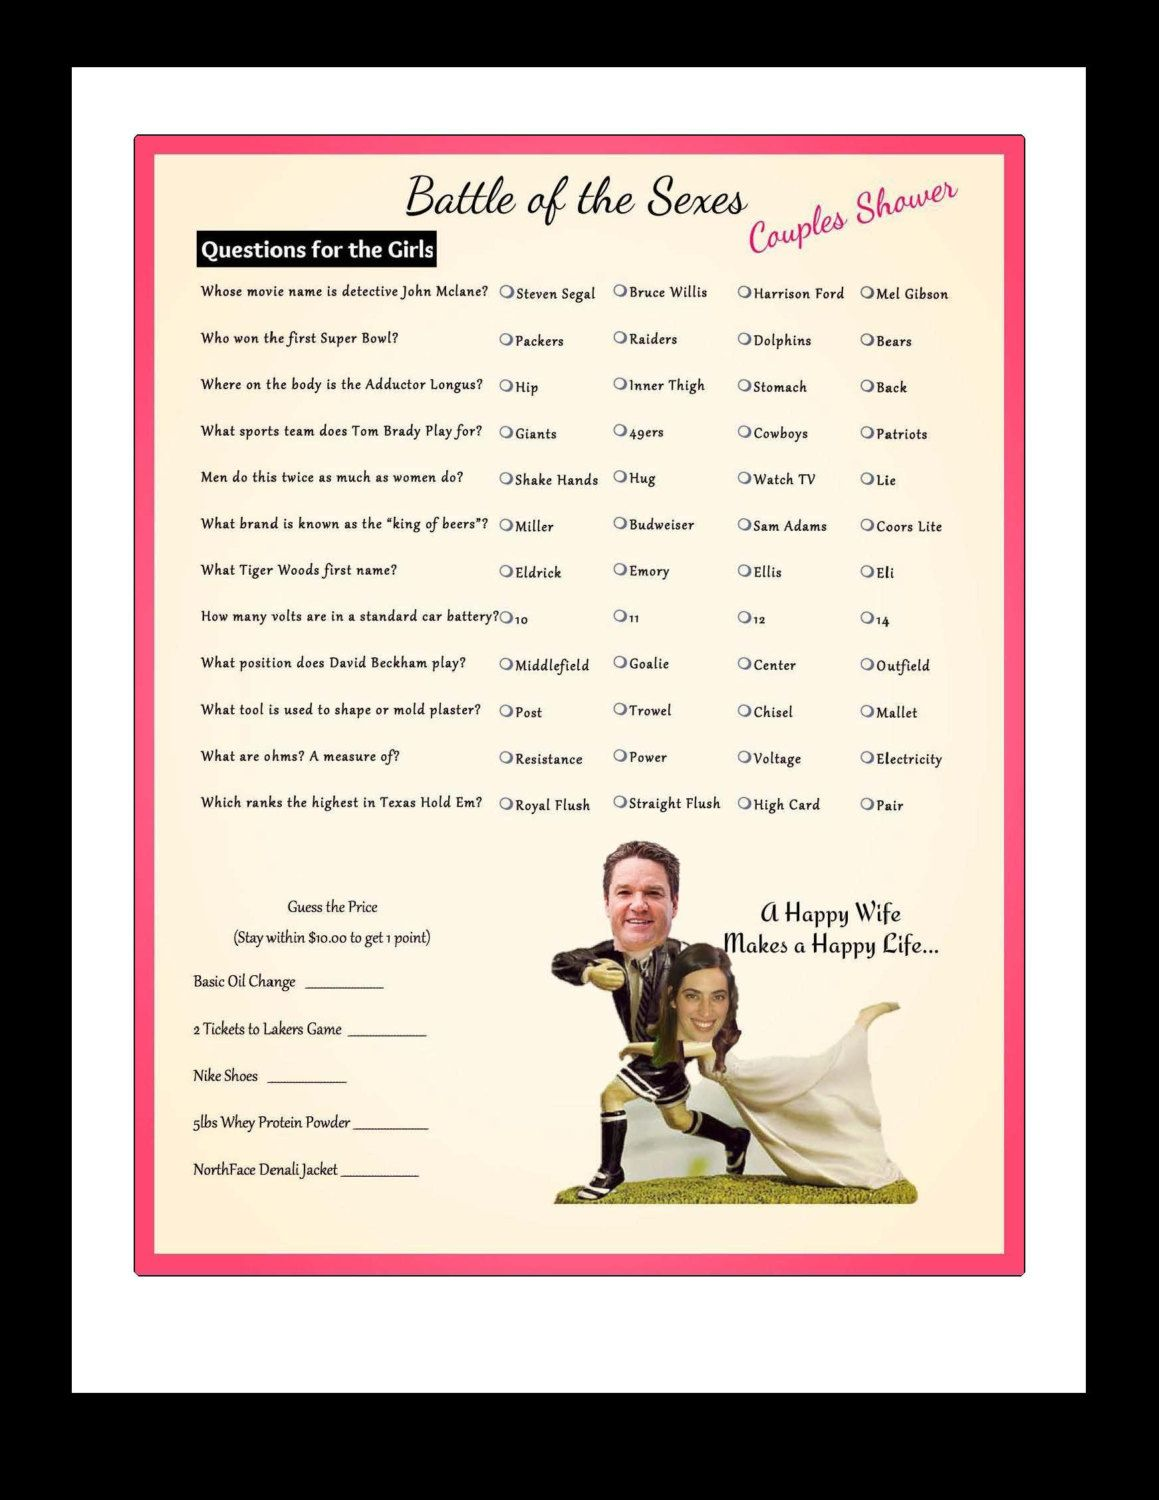 Battle of the sexes questions and answers